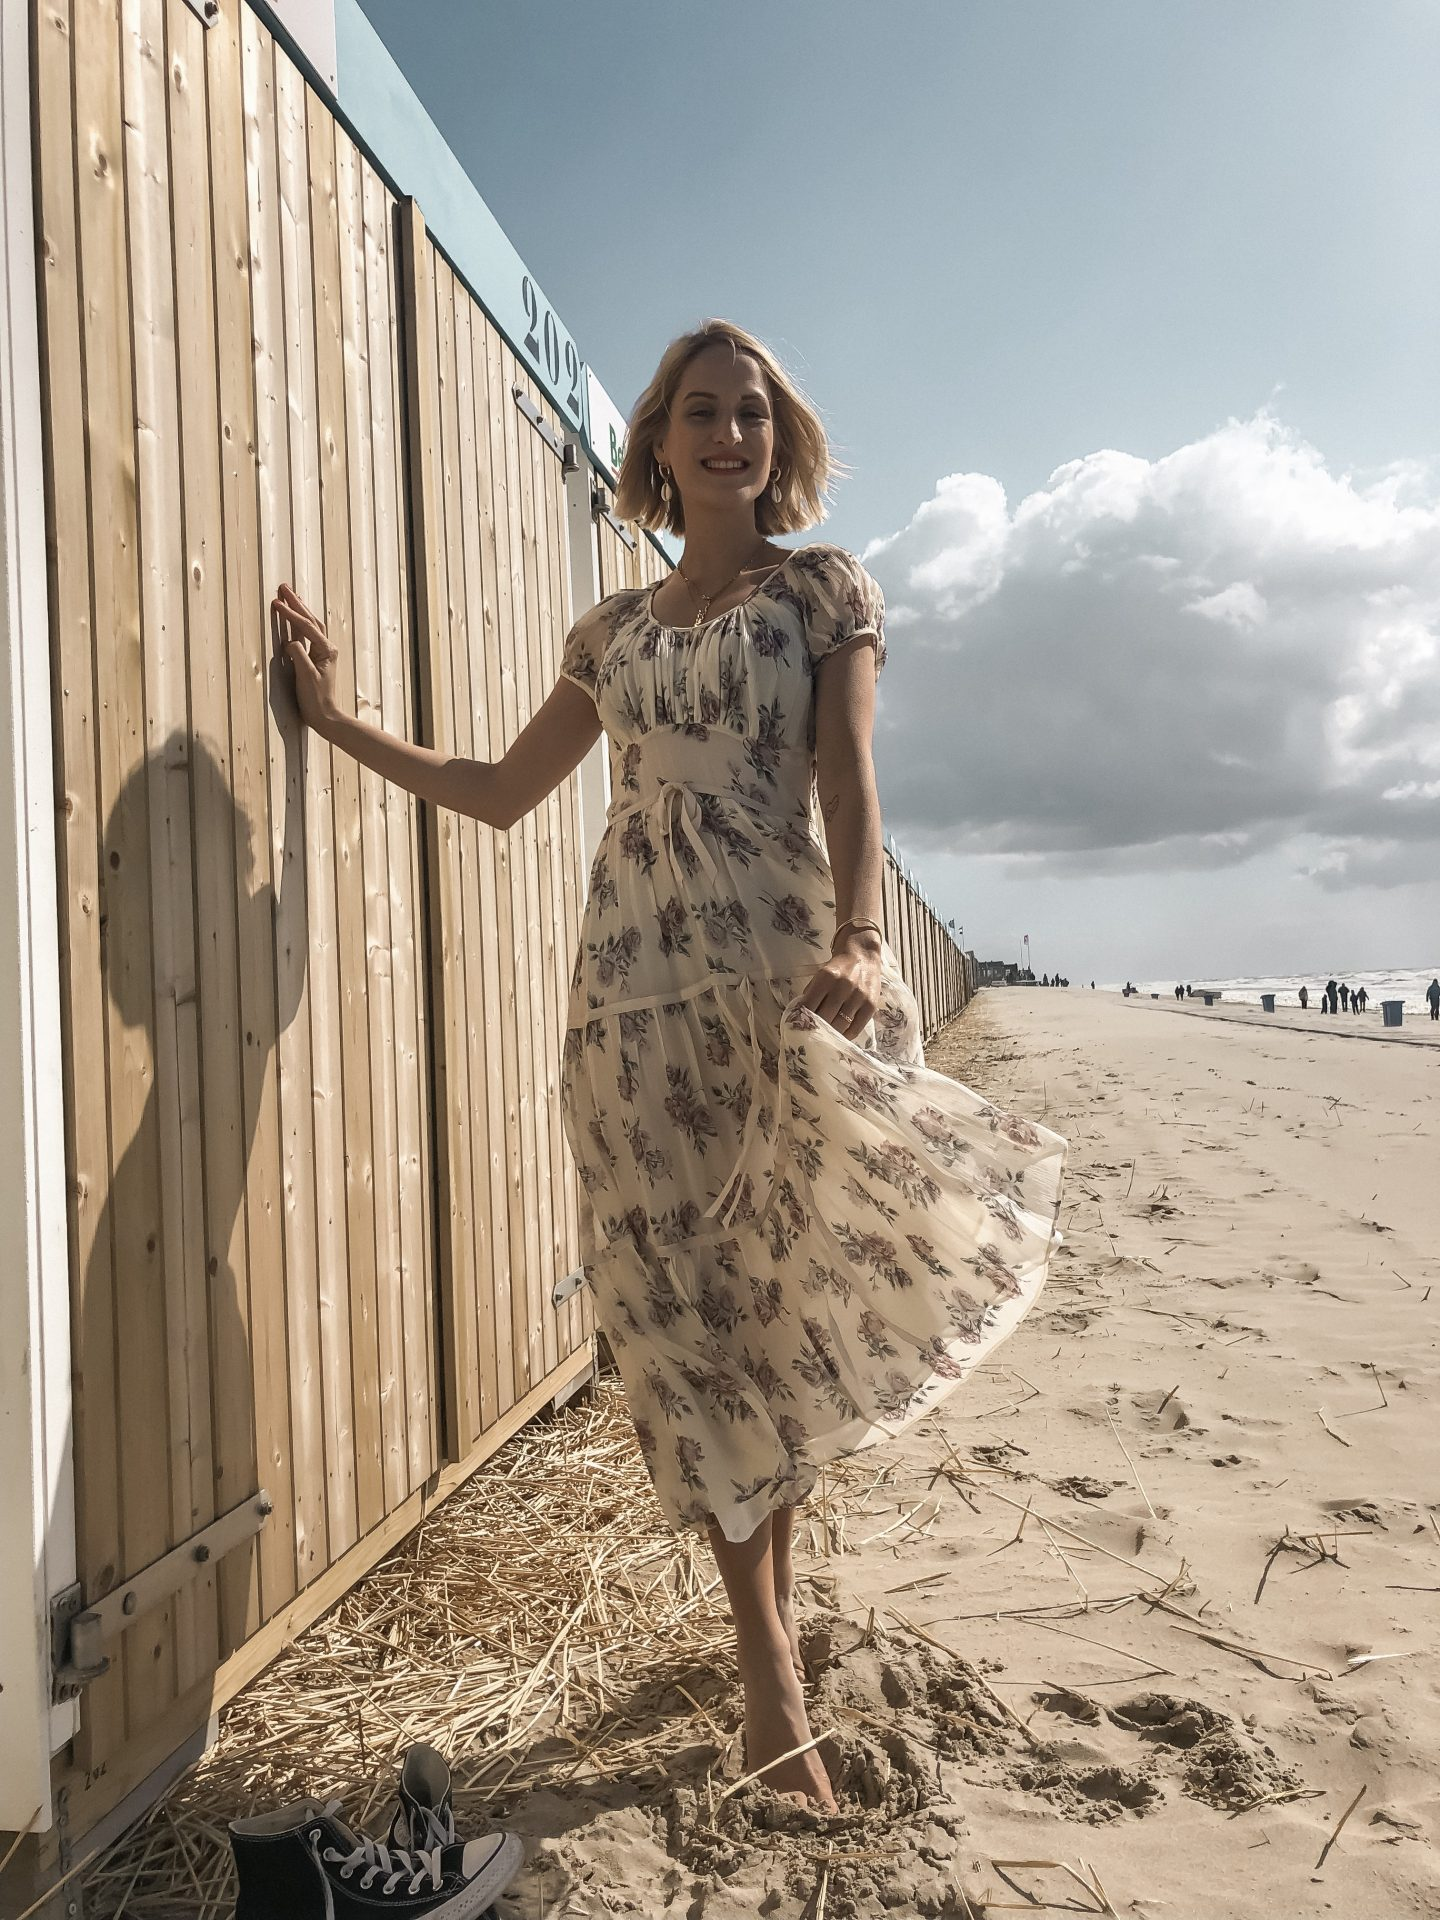 Sommer kleid minidress flowers beachcafe